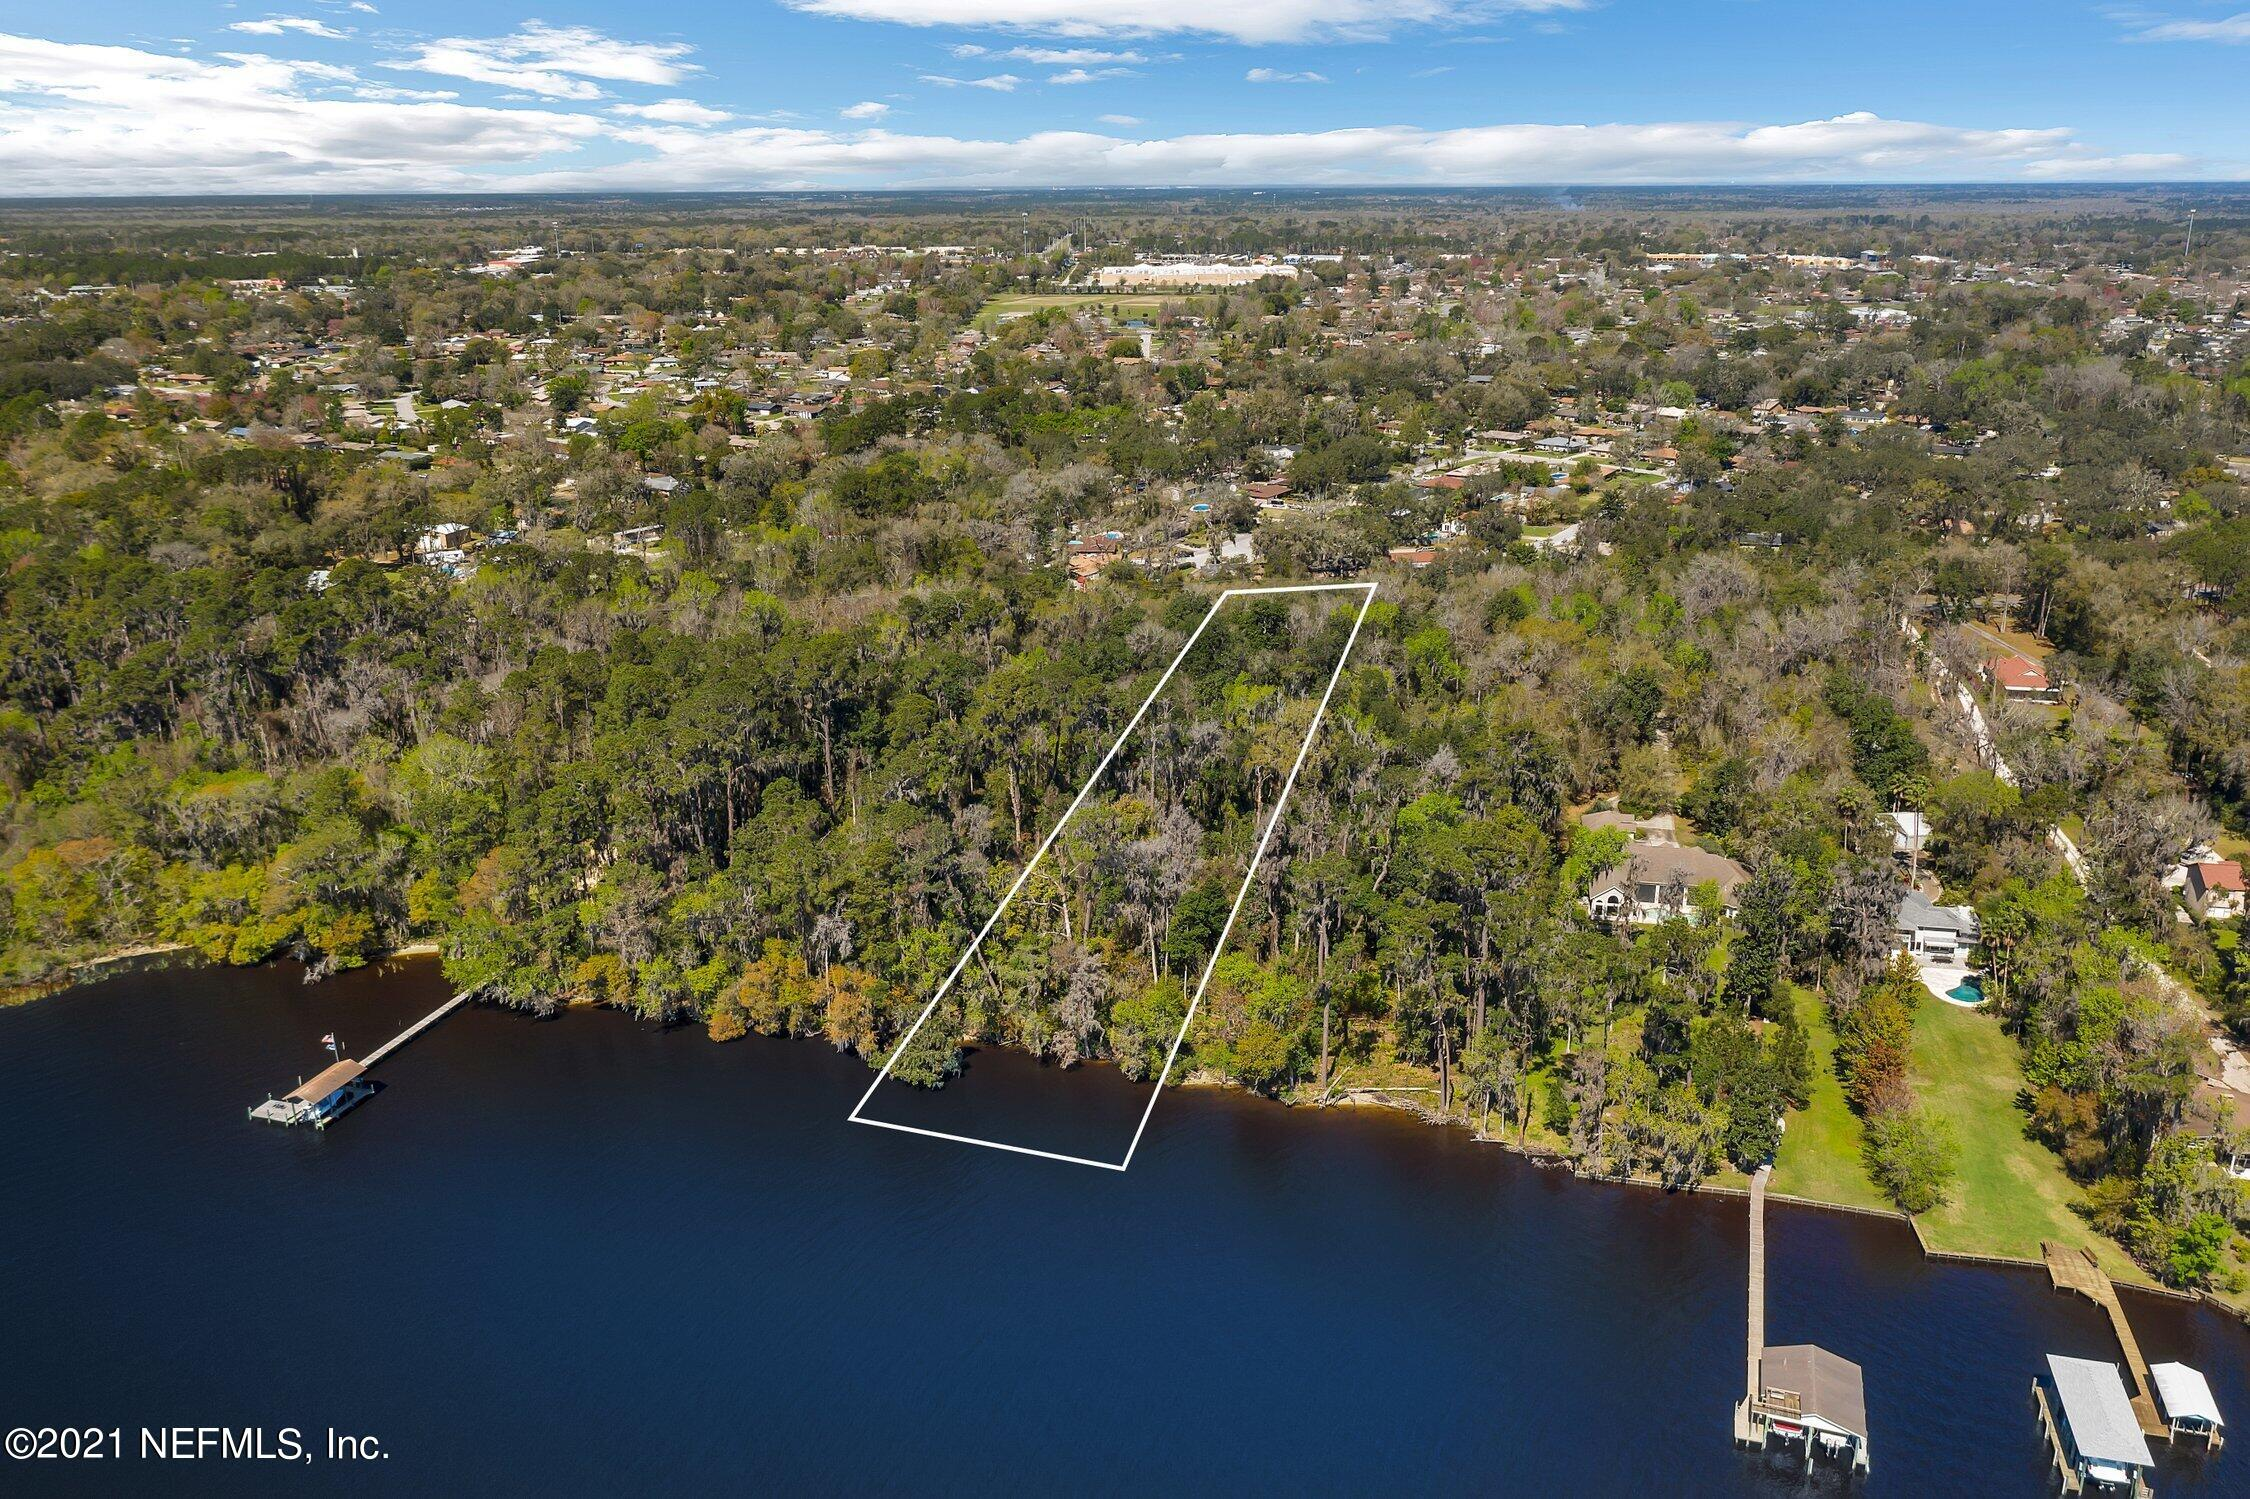 0 DOCTORS LAKE, ORANGE PARK, FLORIDA 32073, ,Vacant land,For sale,DOCTORS LAKE,1098076